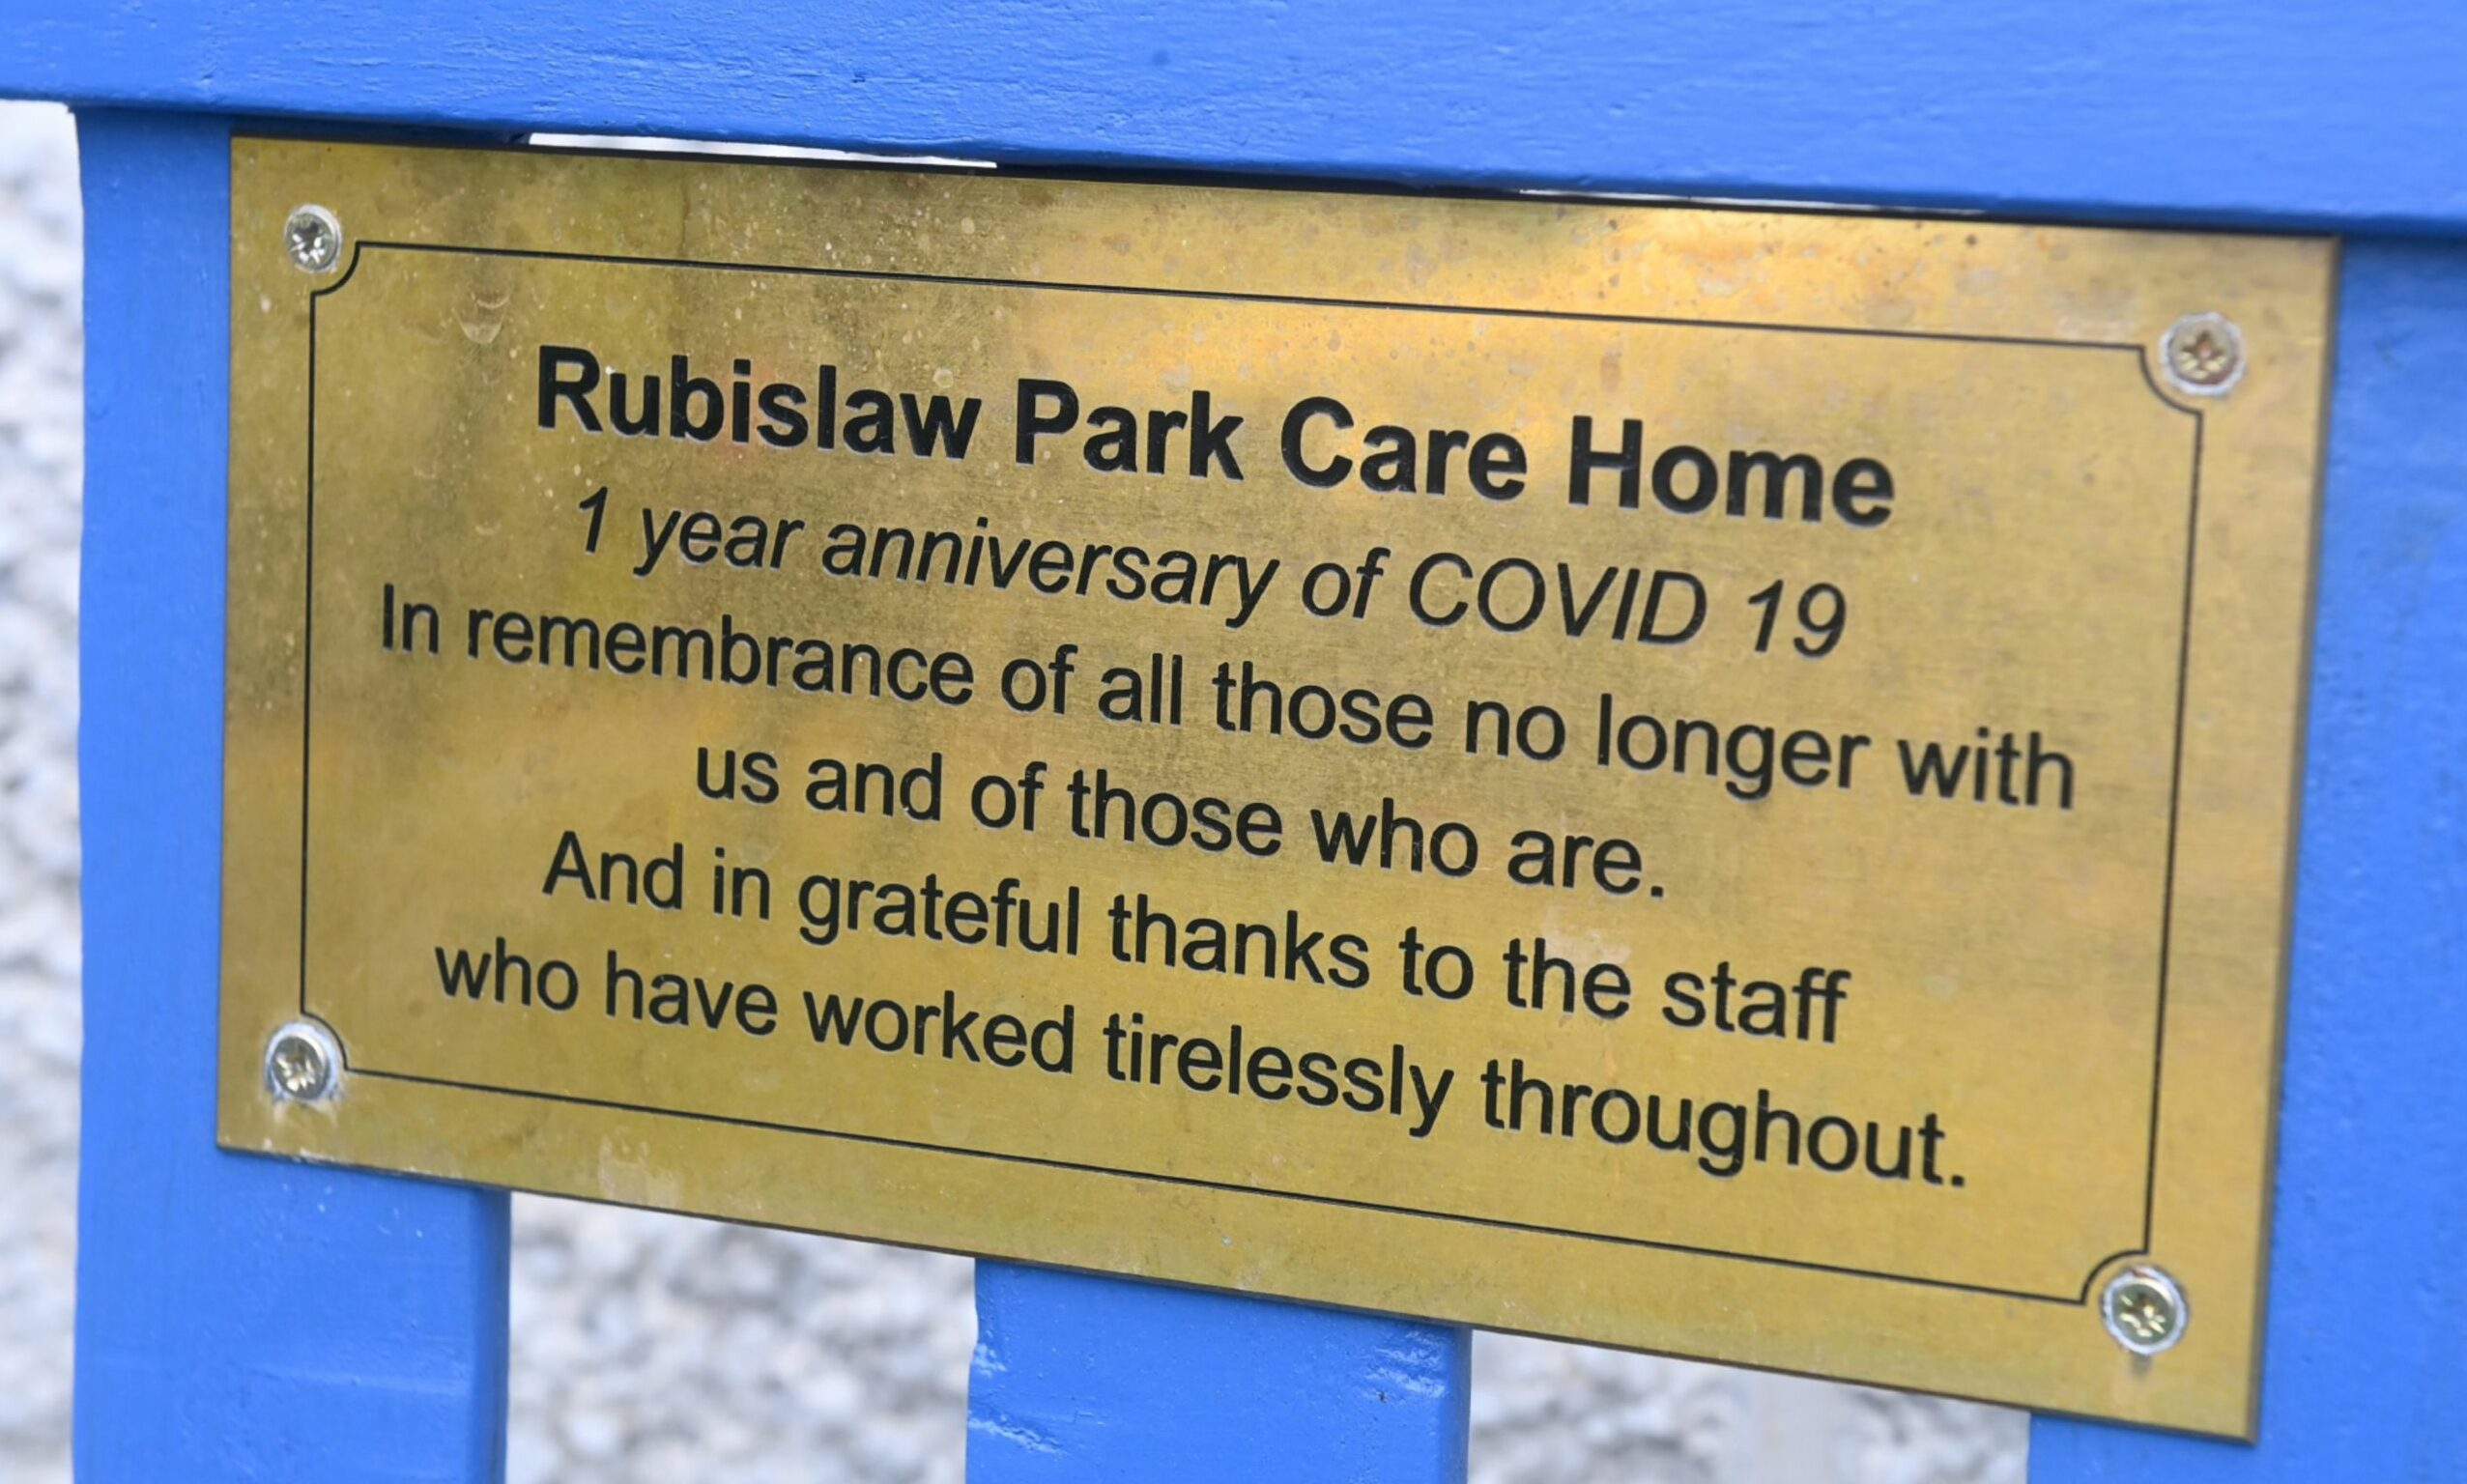 The plaque on the Rubislaw Park memorial bench.